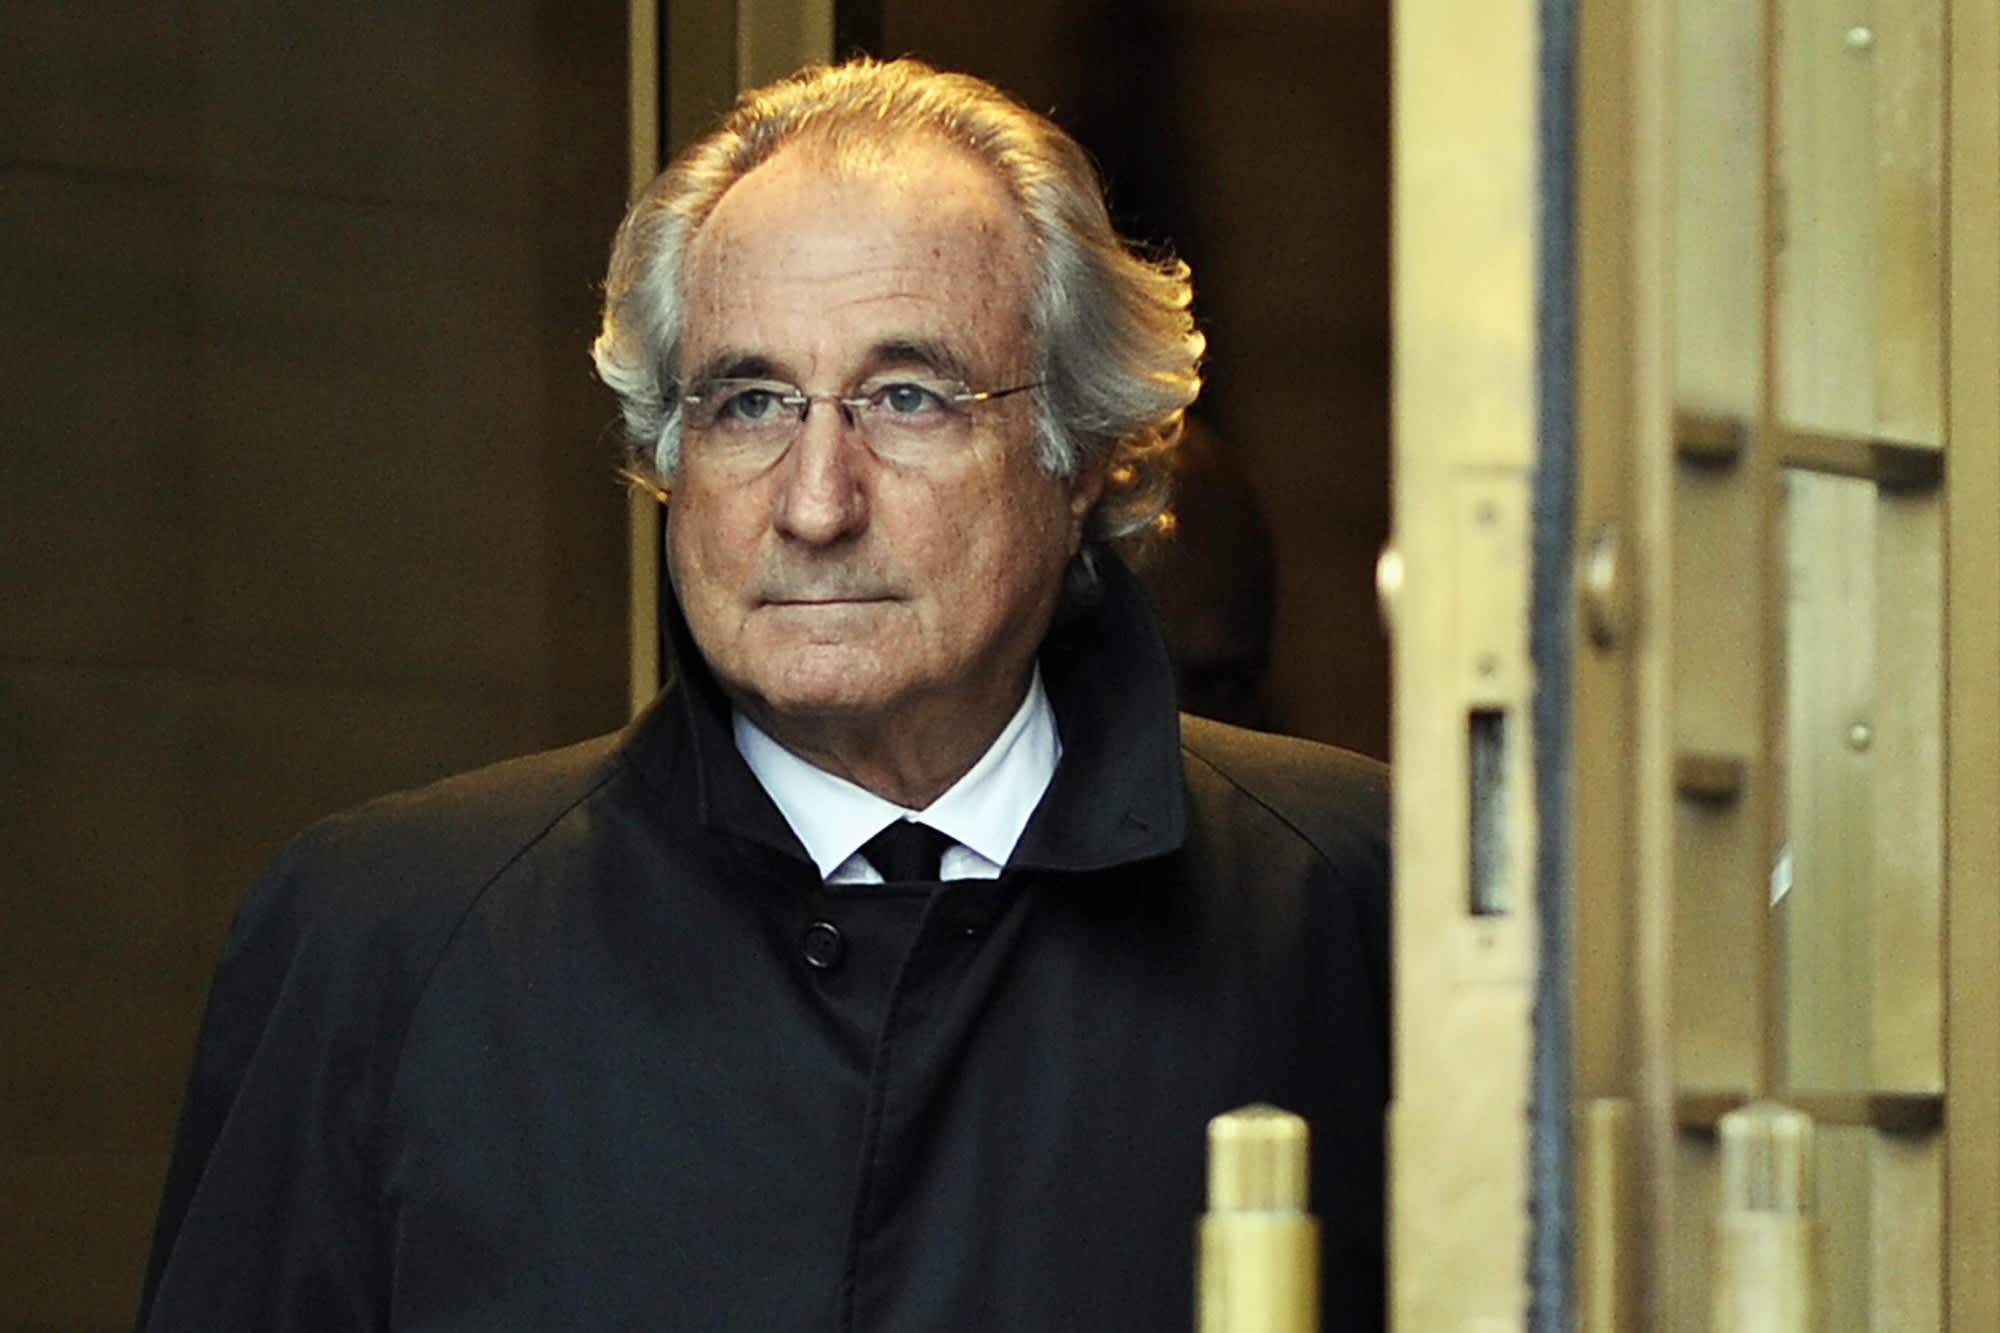 Catastrophe: The Story of Bernard L. Madoff, the Man Who Swindled the World